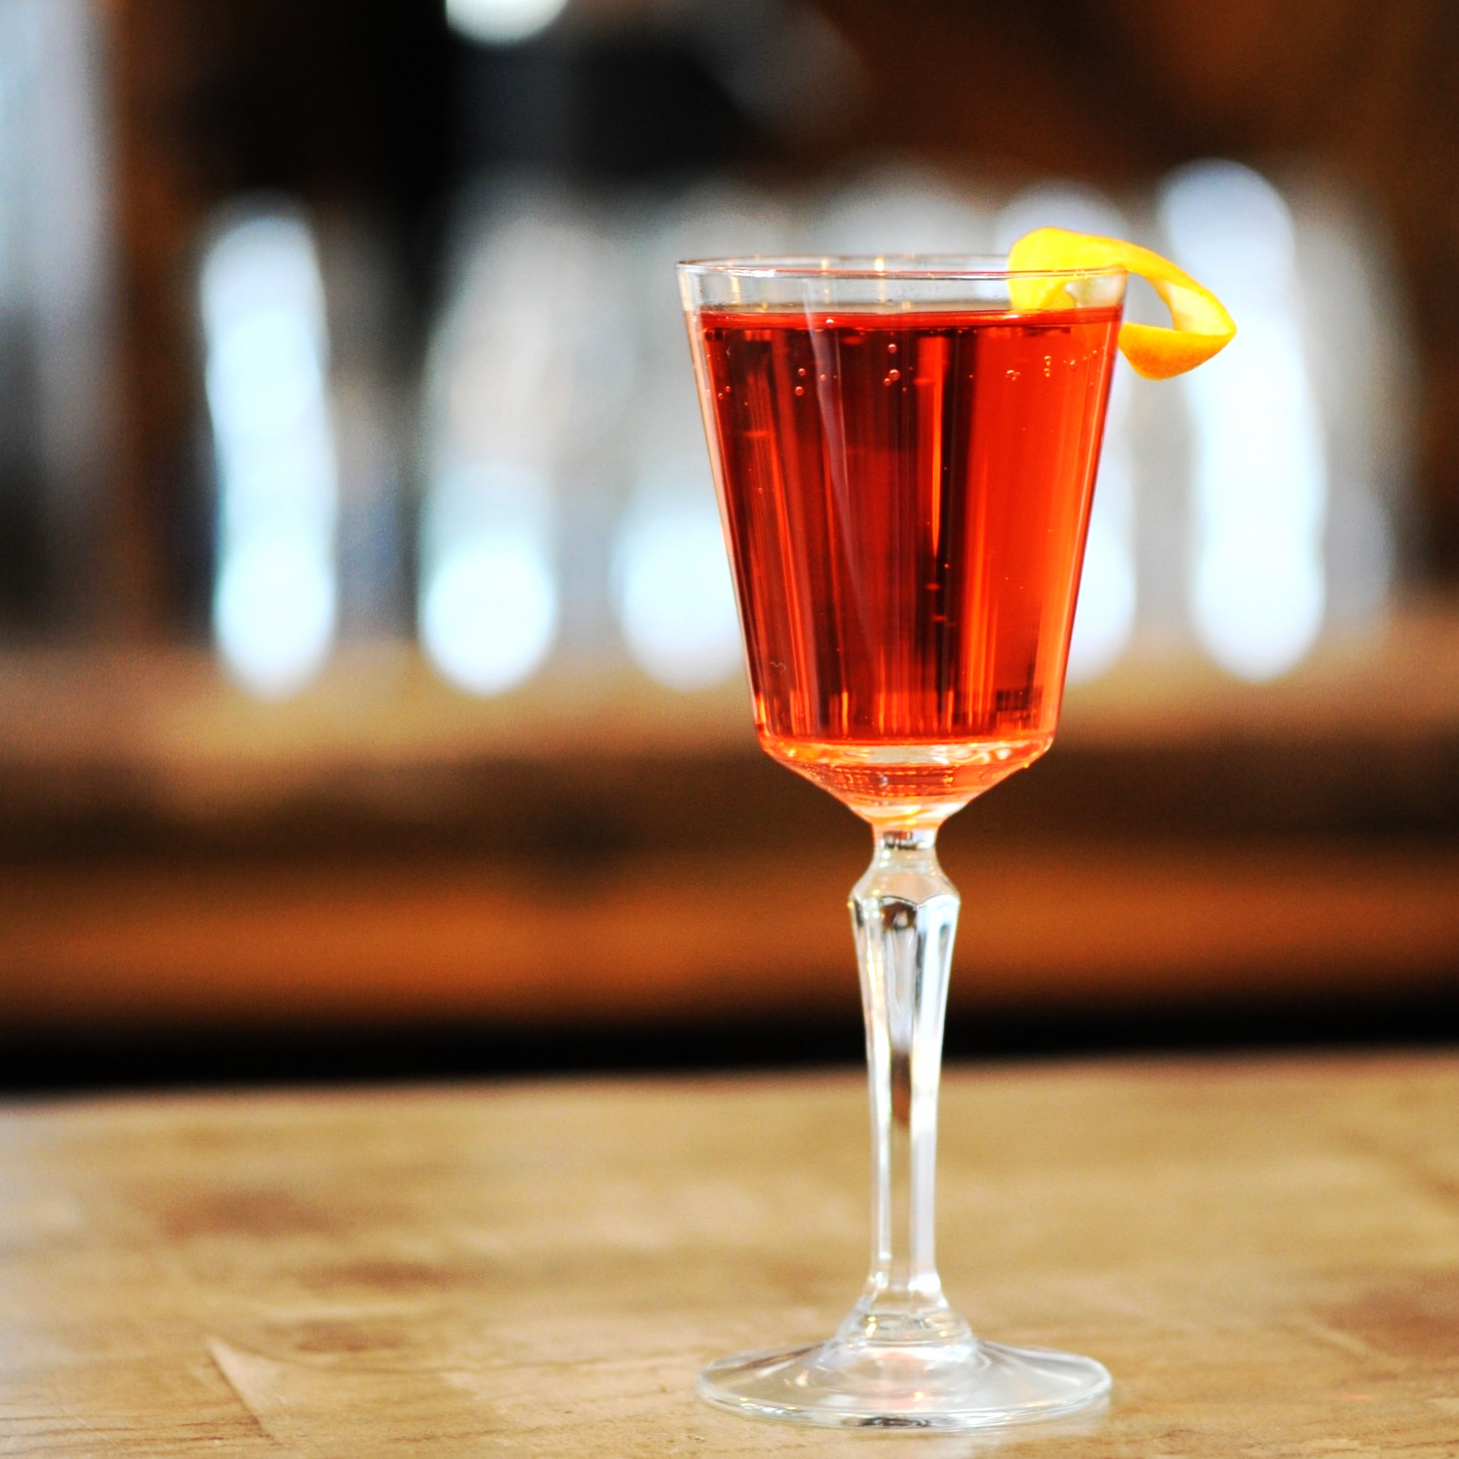 the-cocktail-experiment-syrups-old-fashioned-aromatic-martinez